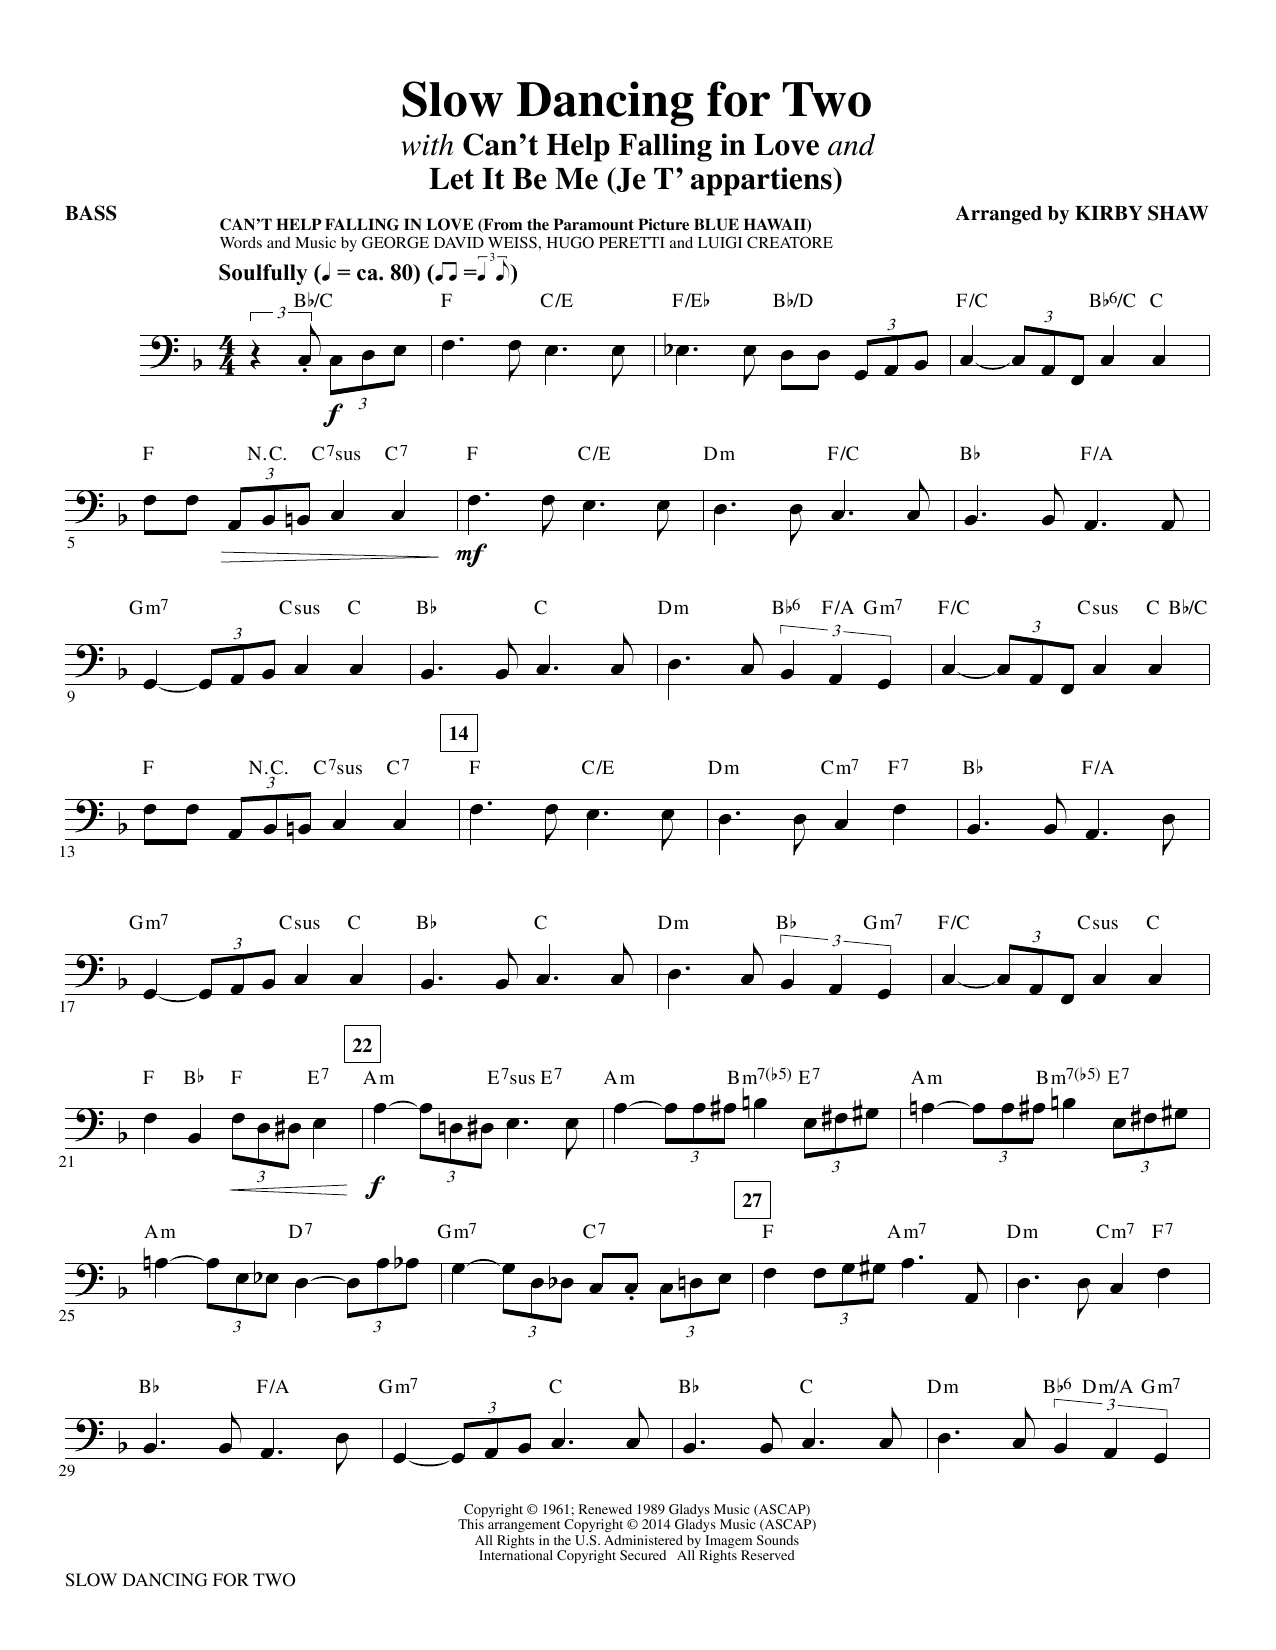 Slow Dancing for Two - Bass Sheet Music